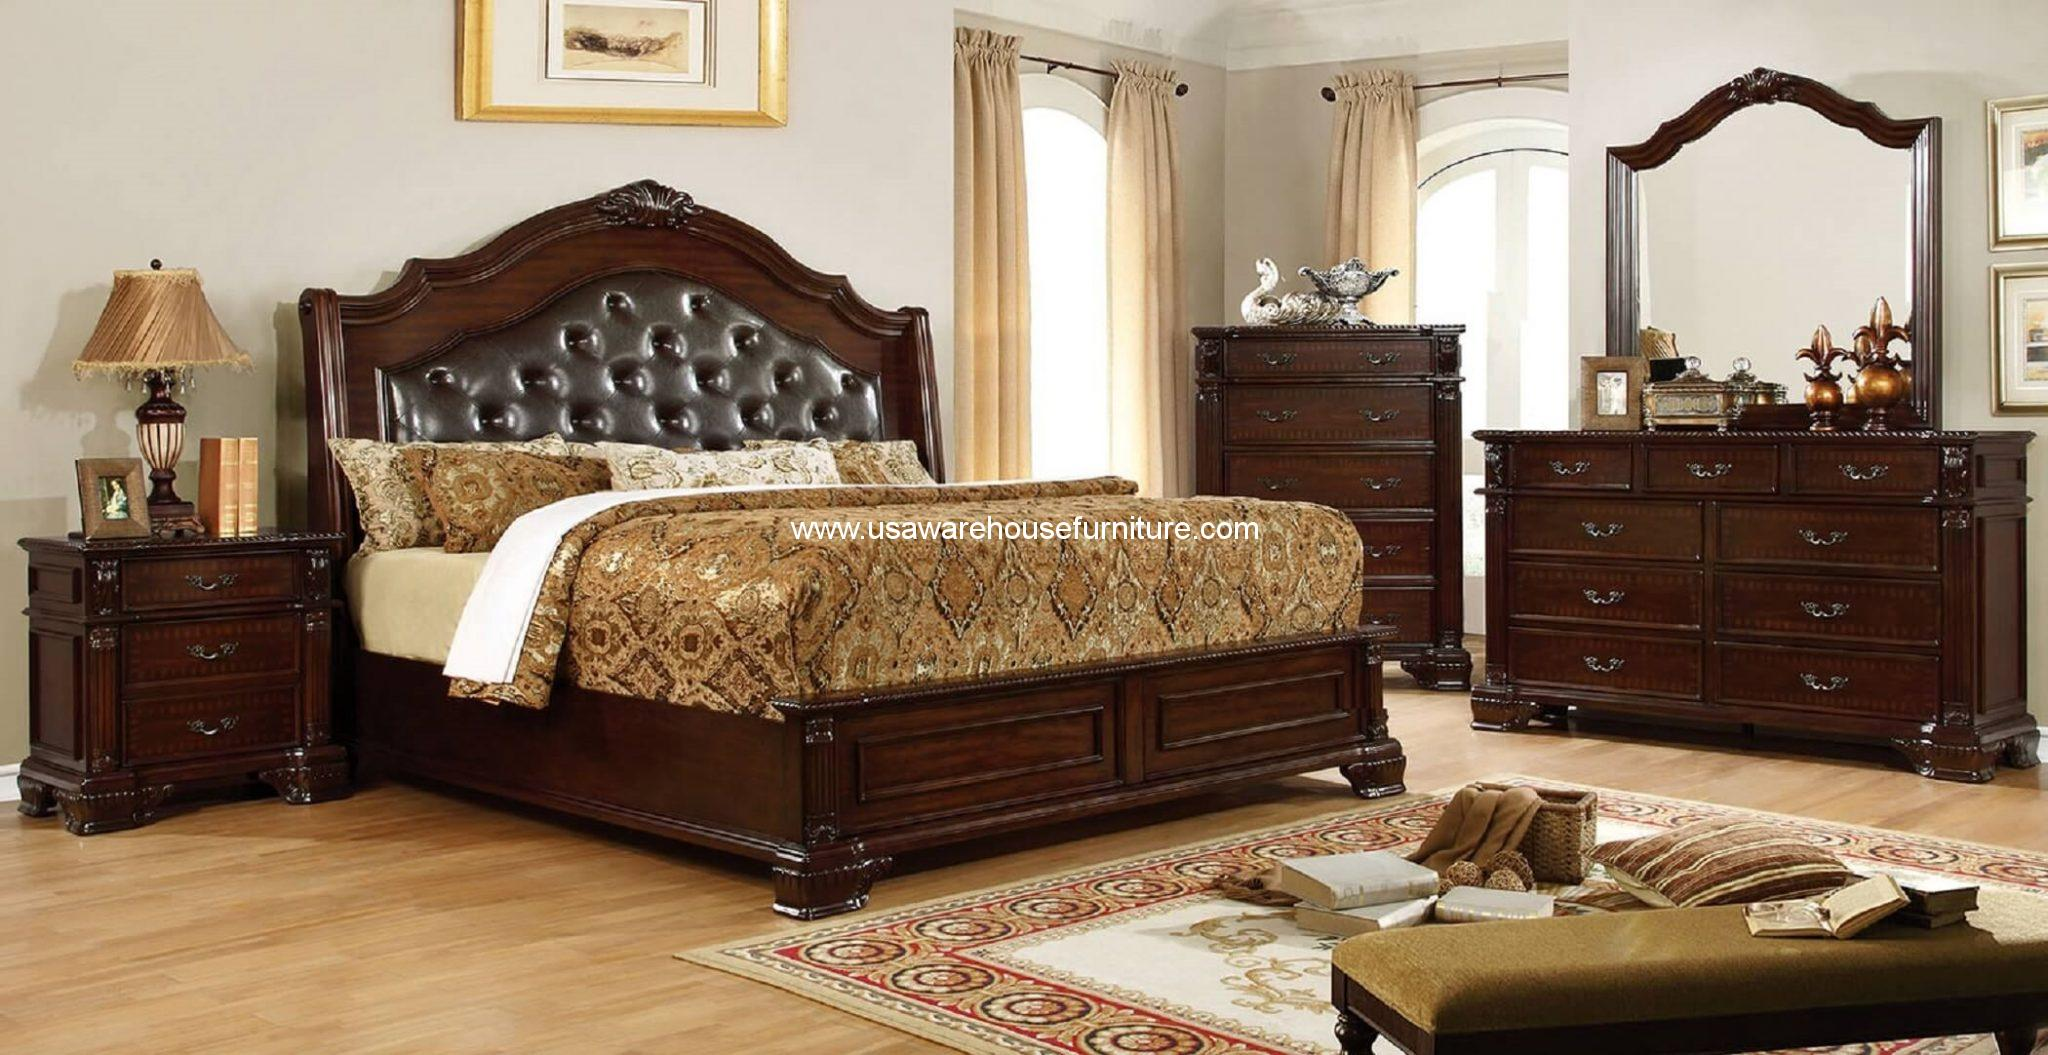 bedroom traditional bedroom set 4 piece edinburgh traditional bedroom